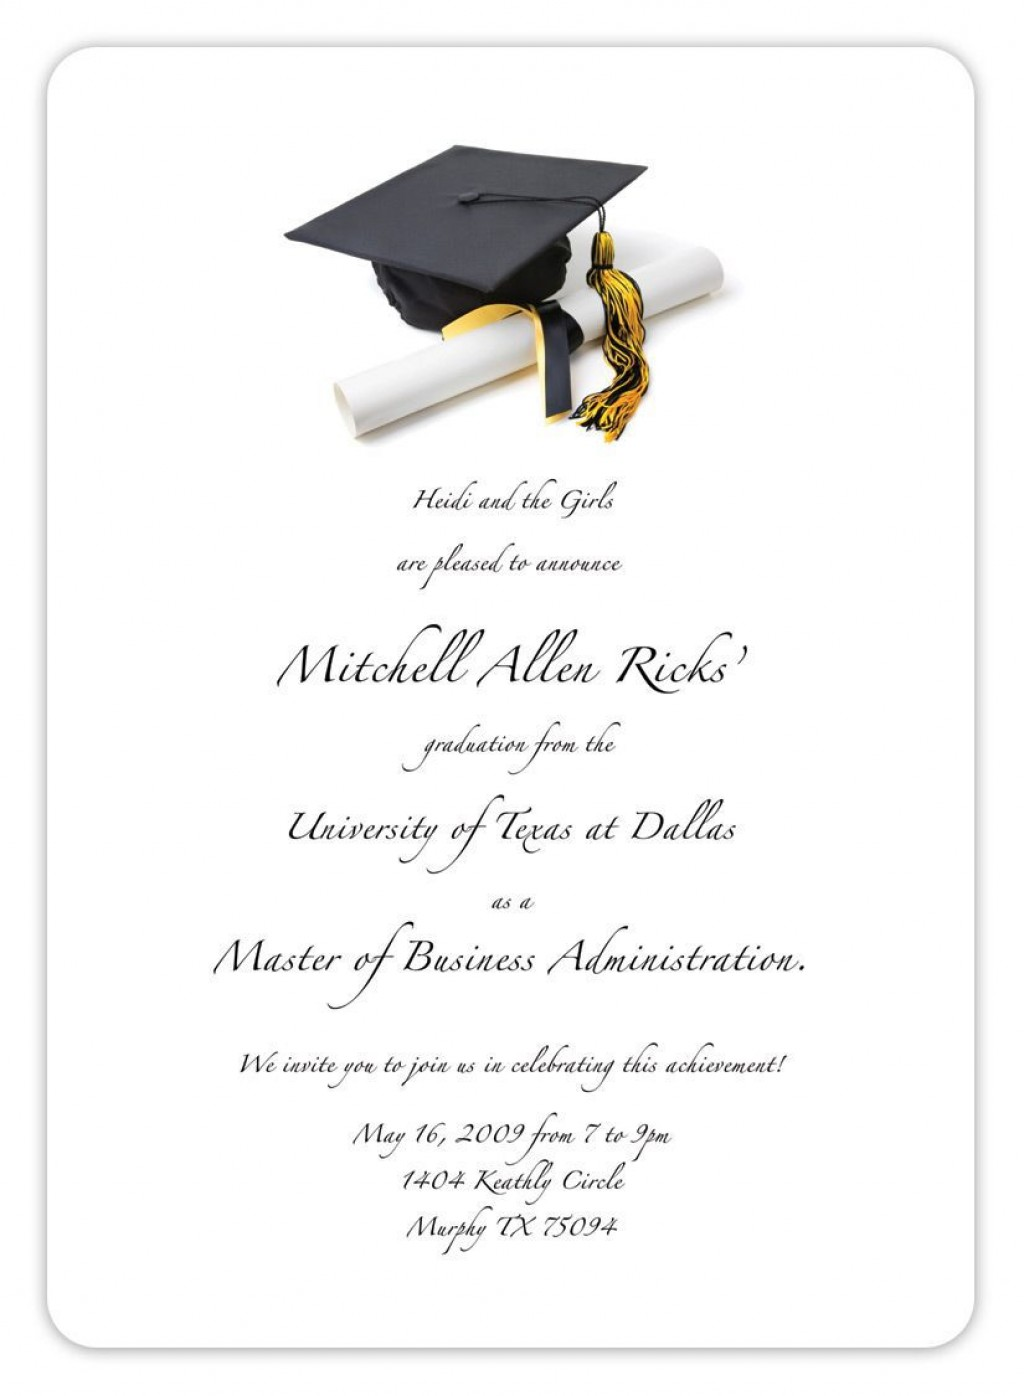 006 Breathtaking Free Graduation Announcement Template High Definition  Templates For Word MicrosoftLarge